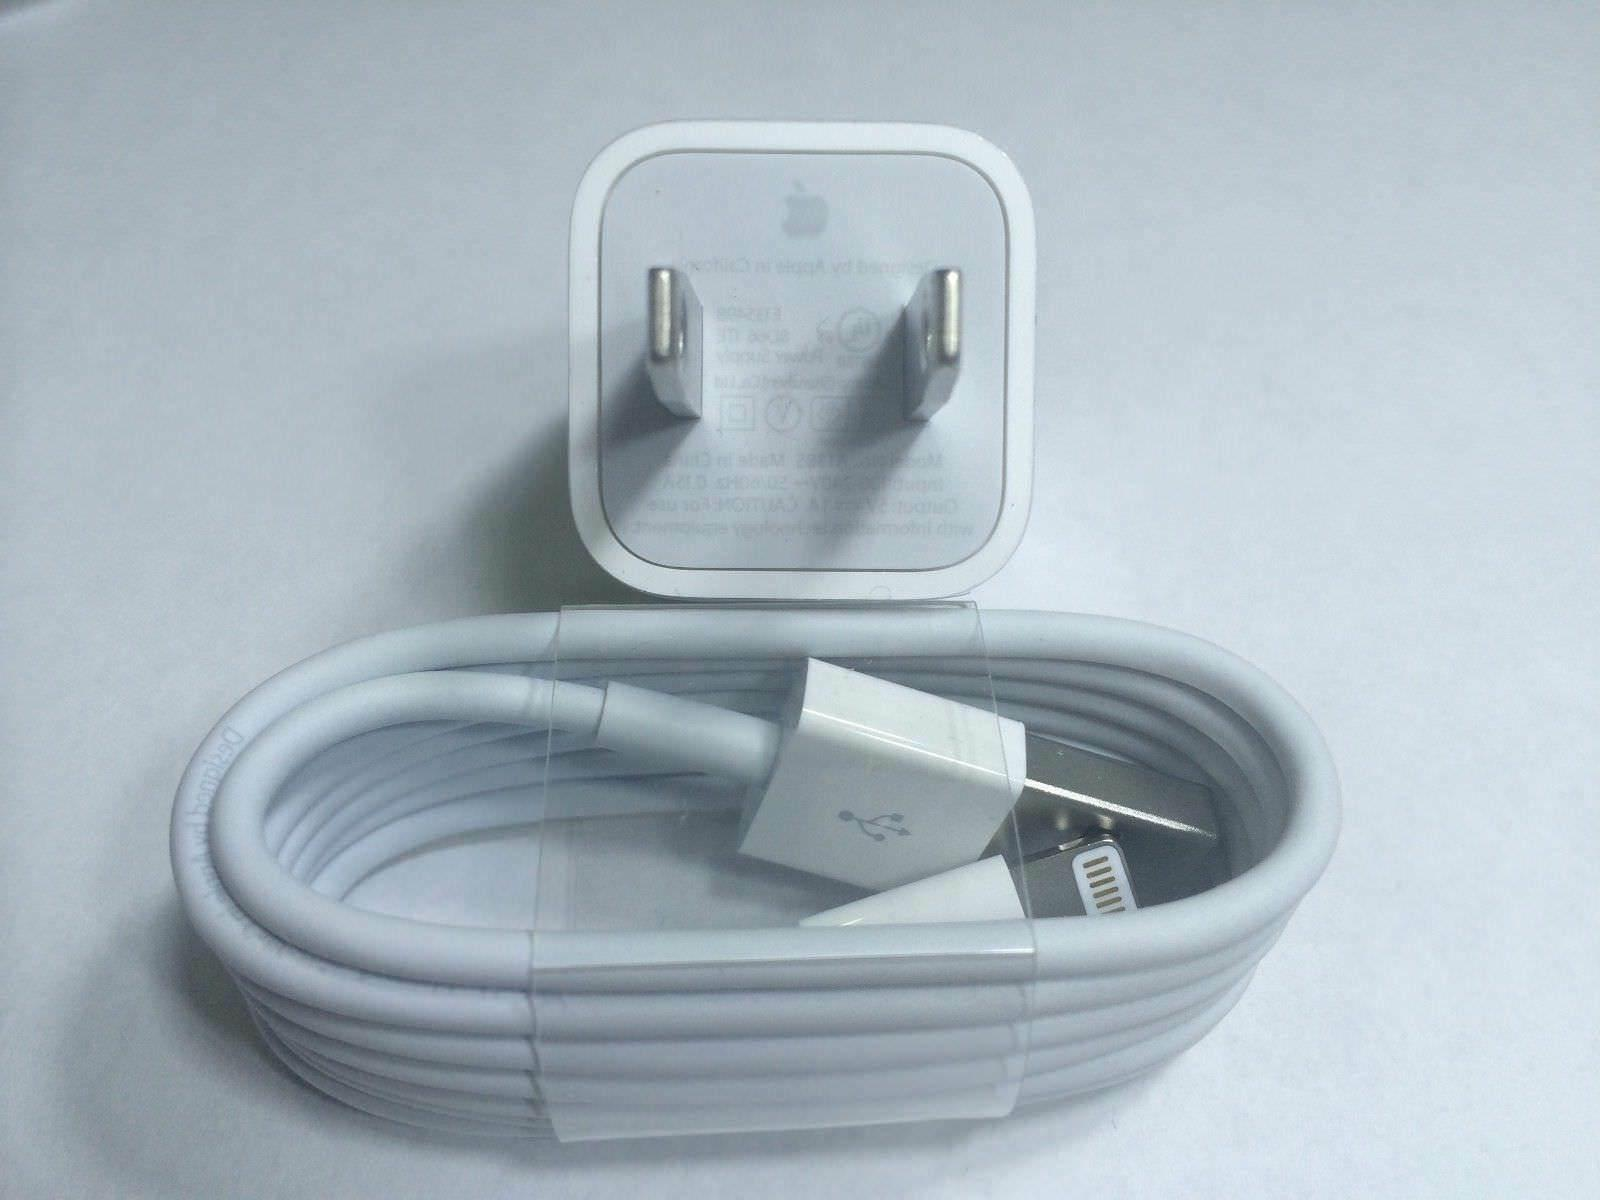 genuine original usb charger cable for iphone